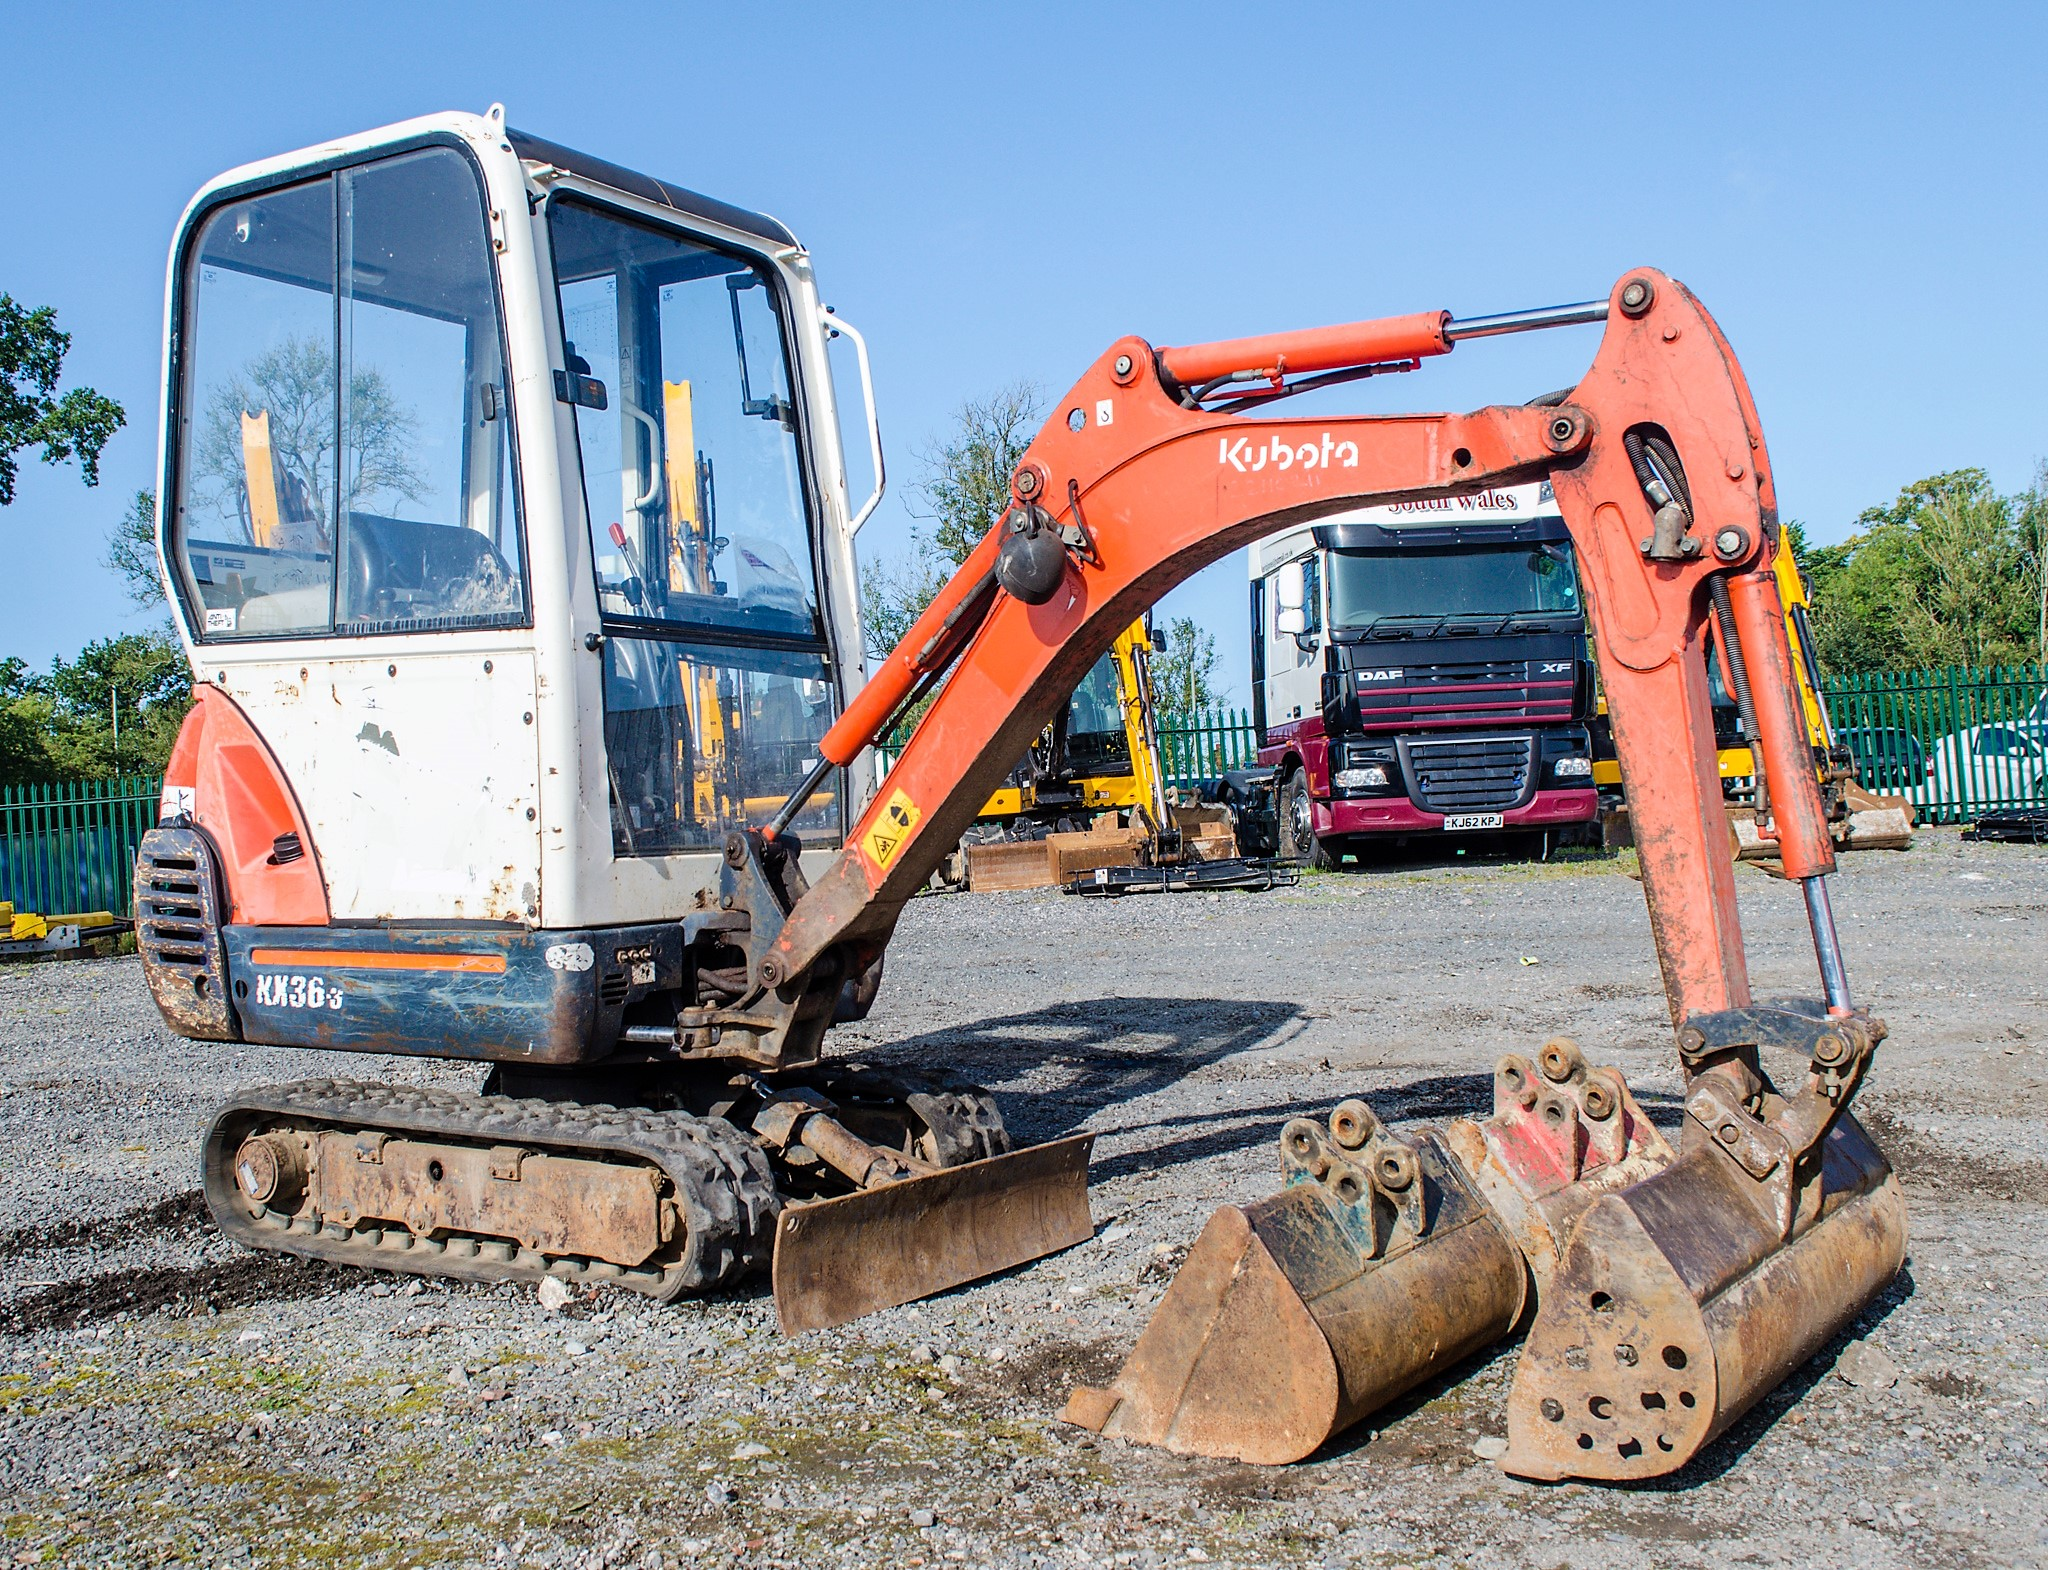 Kubota KX36-3 1.5 tonne rubber tracked mini excavator Year: 2007 S/N: Z077298 Recorded Hours: 4205 - Image 2 of 18